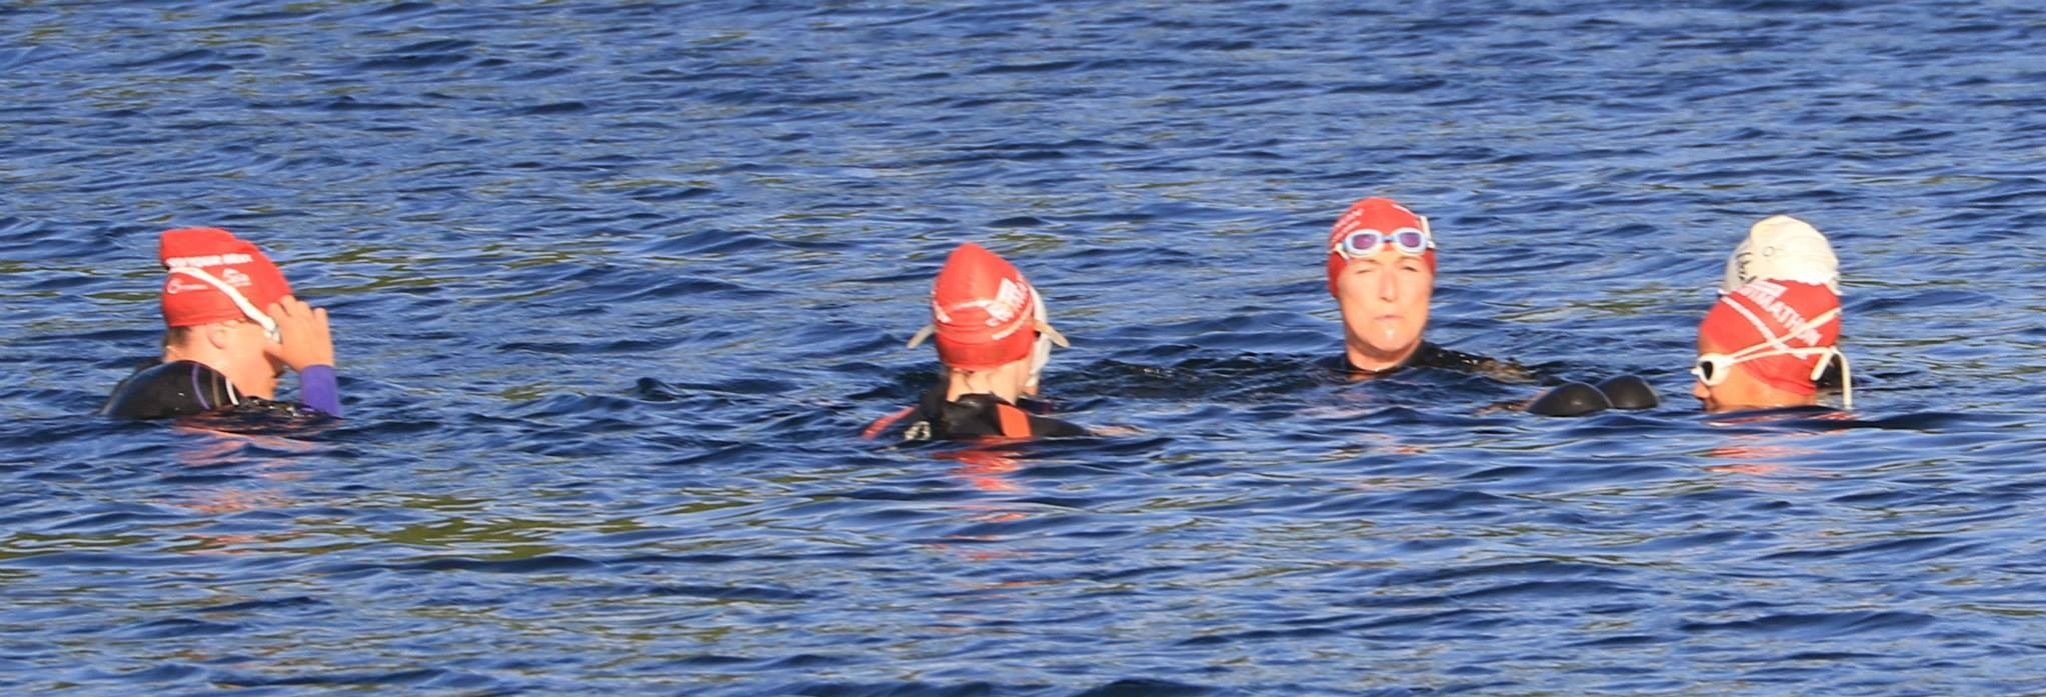 Open Water Swim - Hillingdon Triathletes